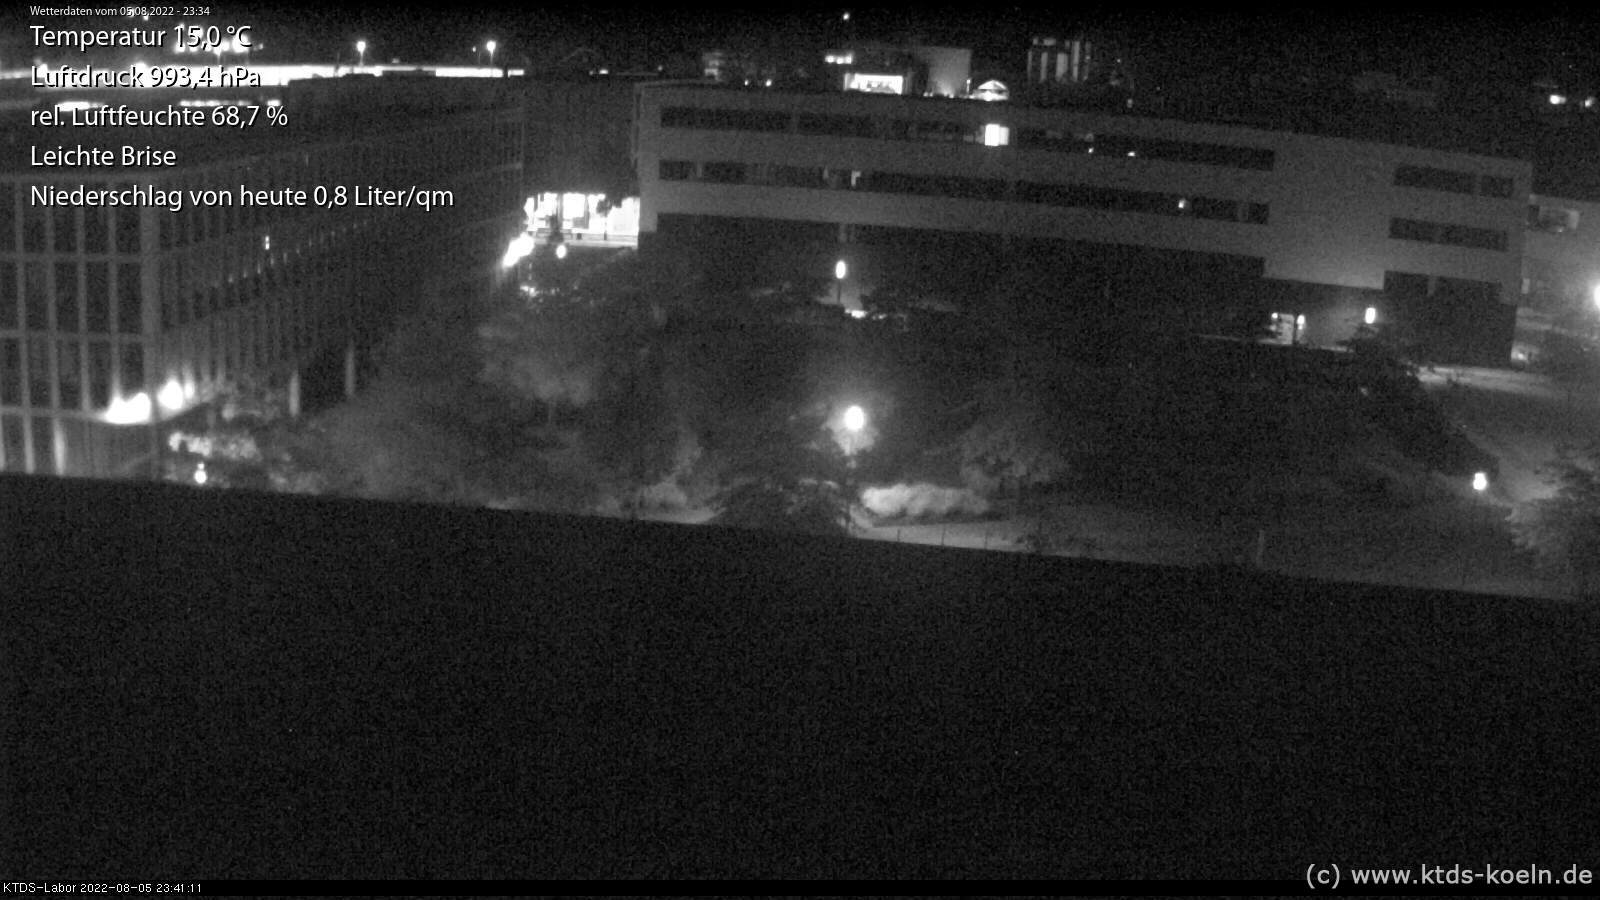 KTDS webcam at Gummersbach, Steinmüller area, 10 minutes ago